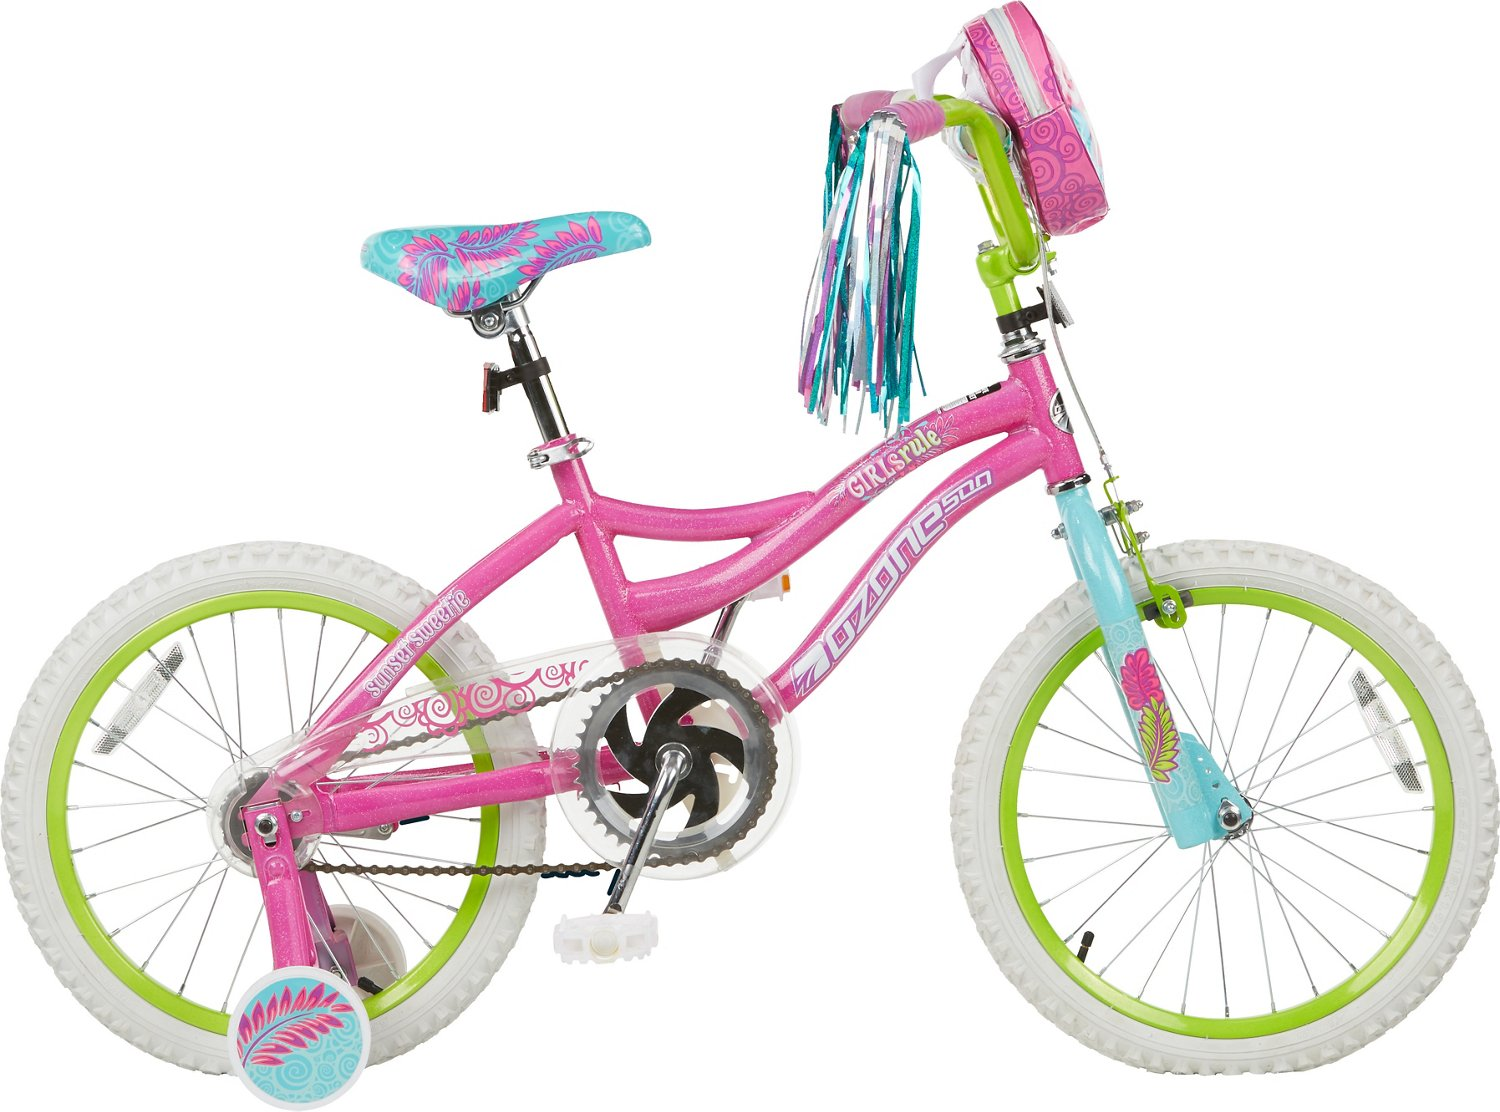 1c1eab5d18c Display product reviews for Ozone 500 Girls' 18 in Girls Rule Bike